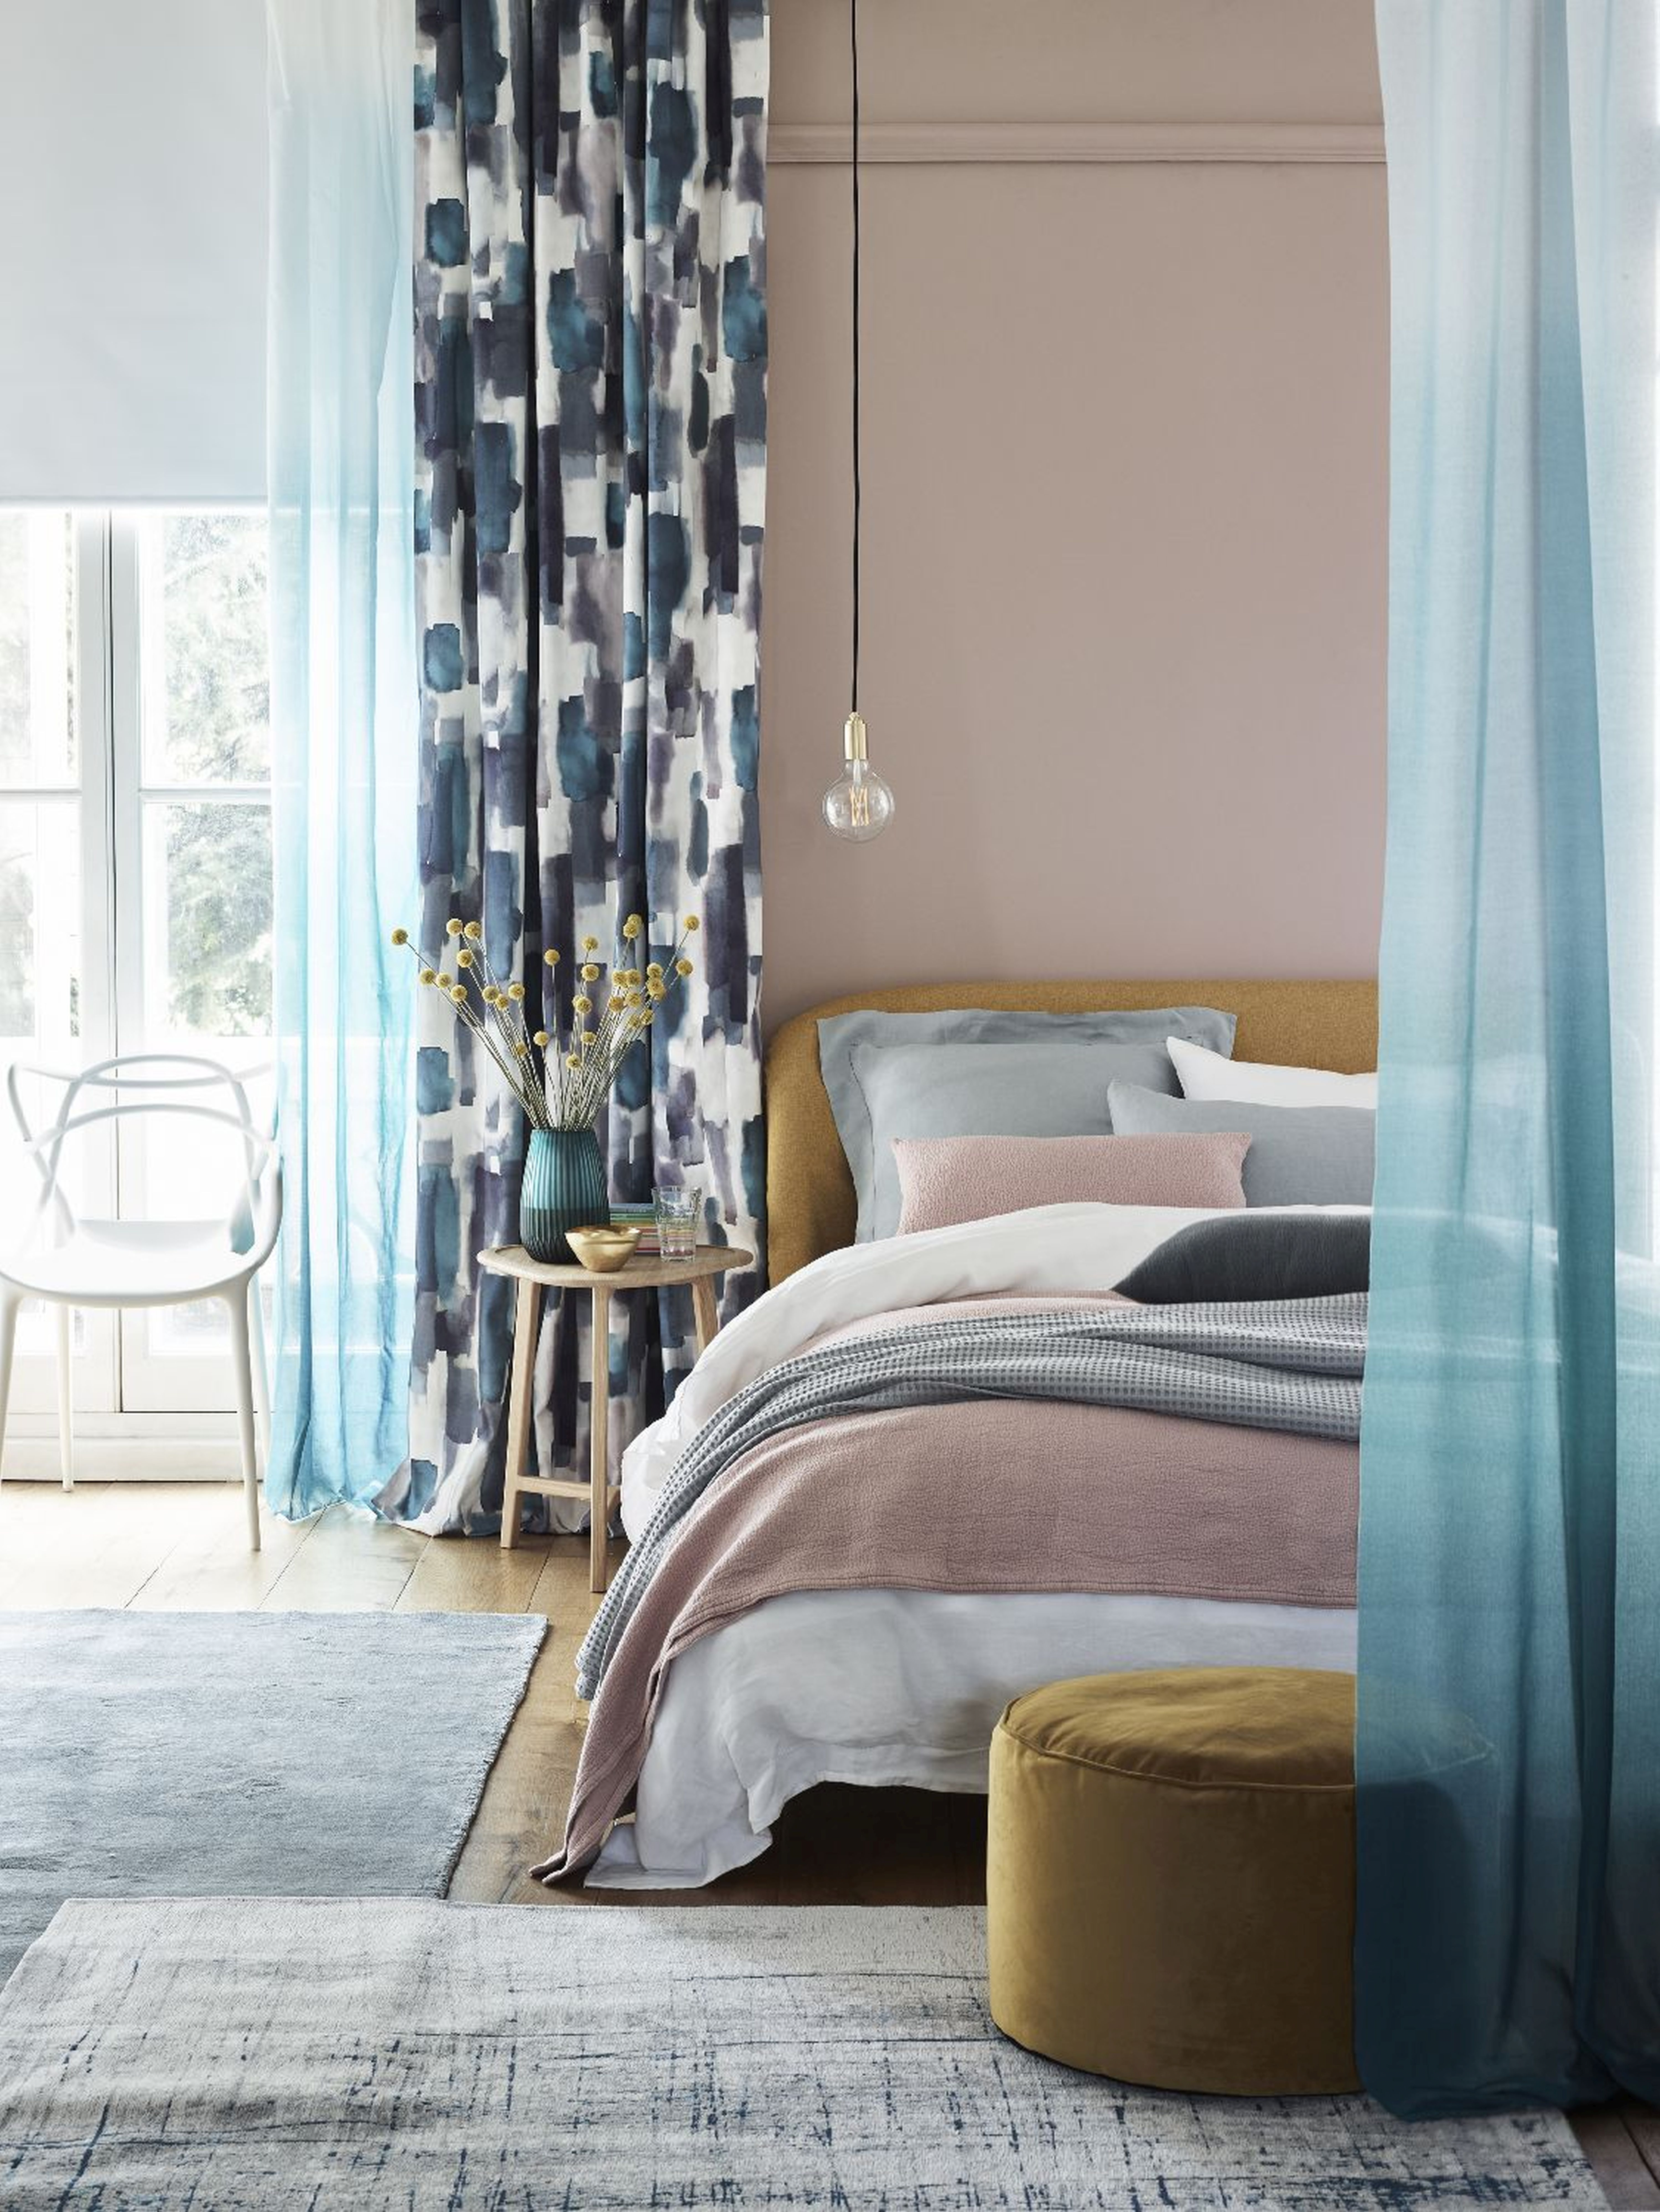 6 ways to create an Instagrammable bedroom